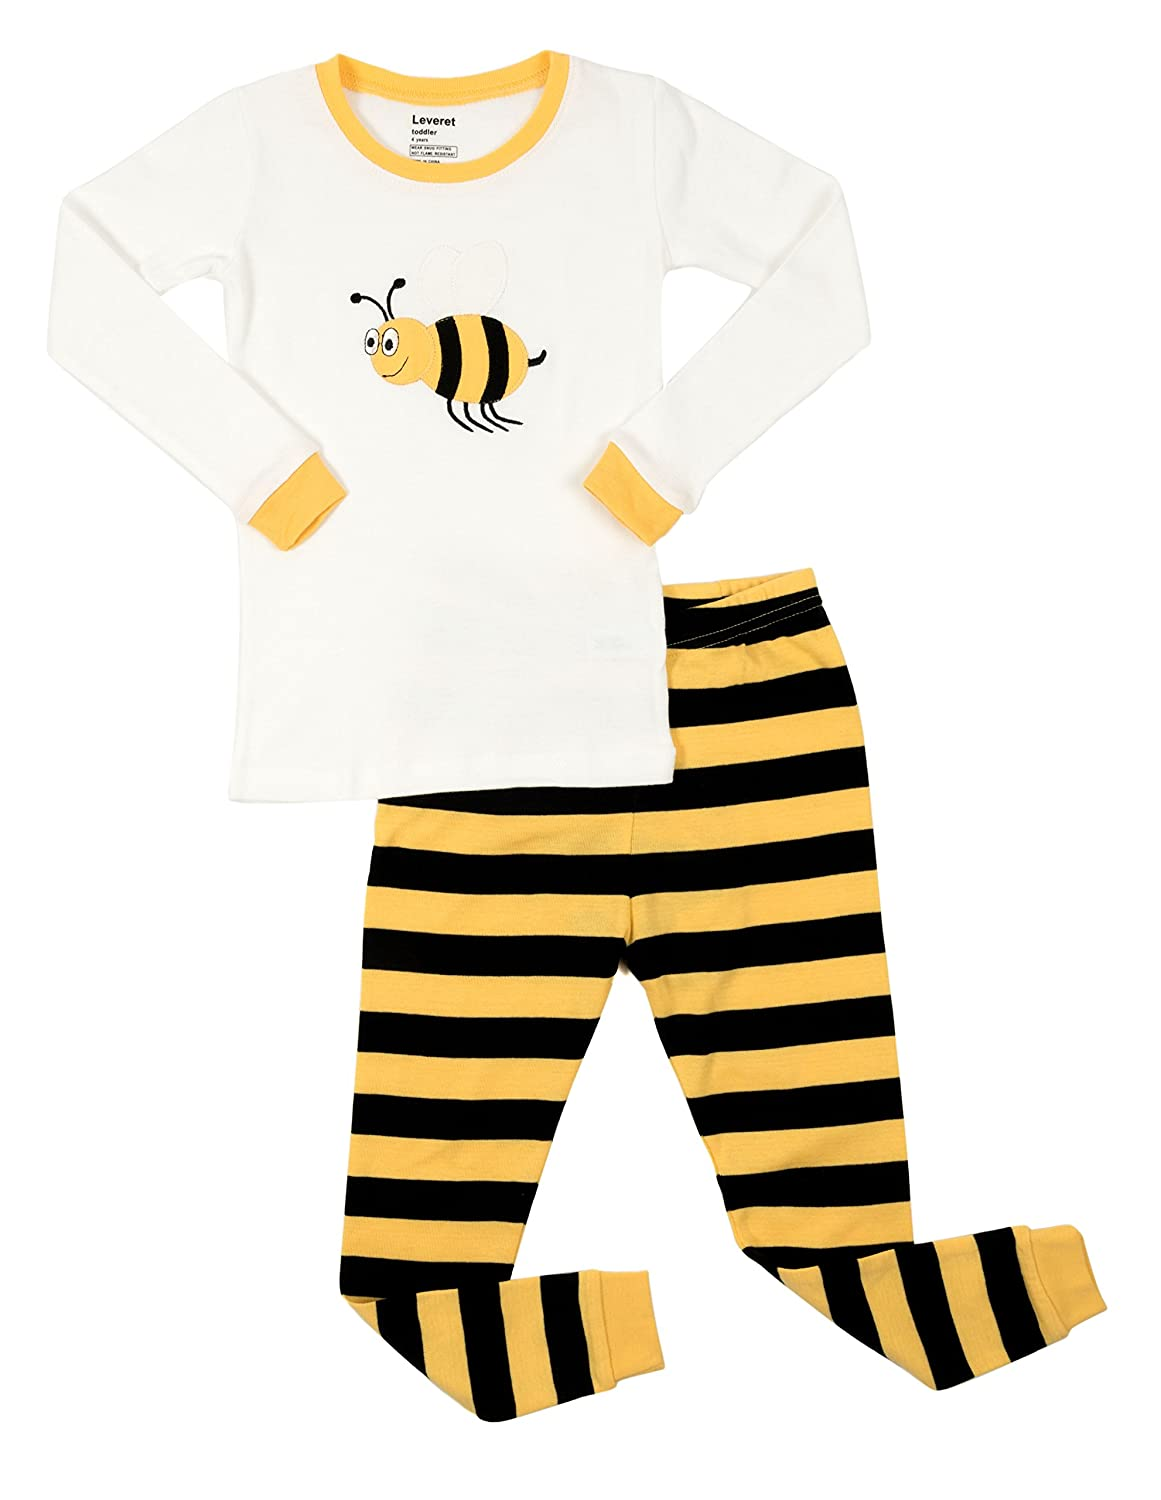 Leveret Kids & Toddler Pajamas Boys Girls Unisex 2 Piece Pjs Set 100% Cotton Sleepwear (12 Months-14 Years)